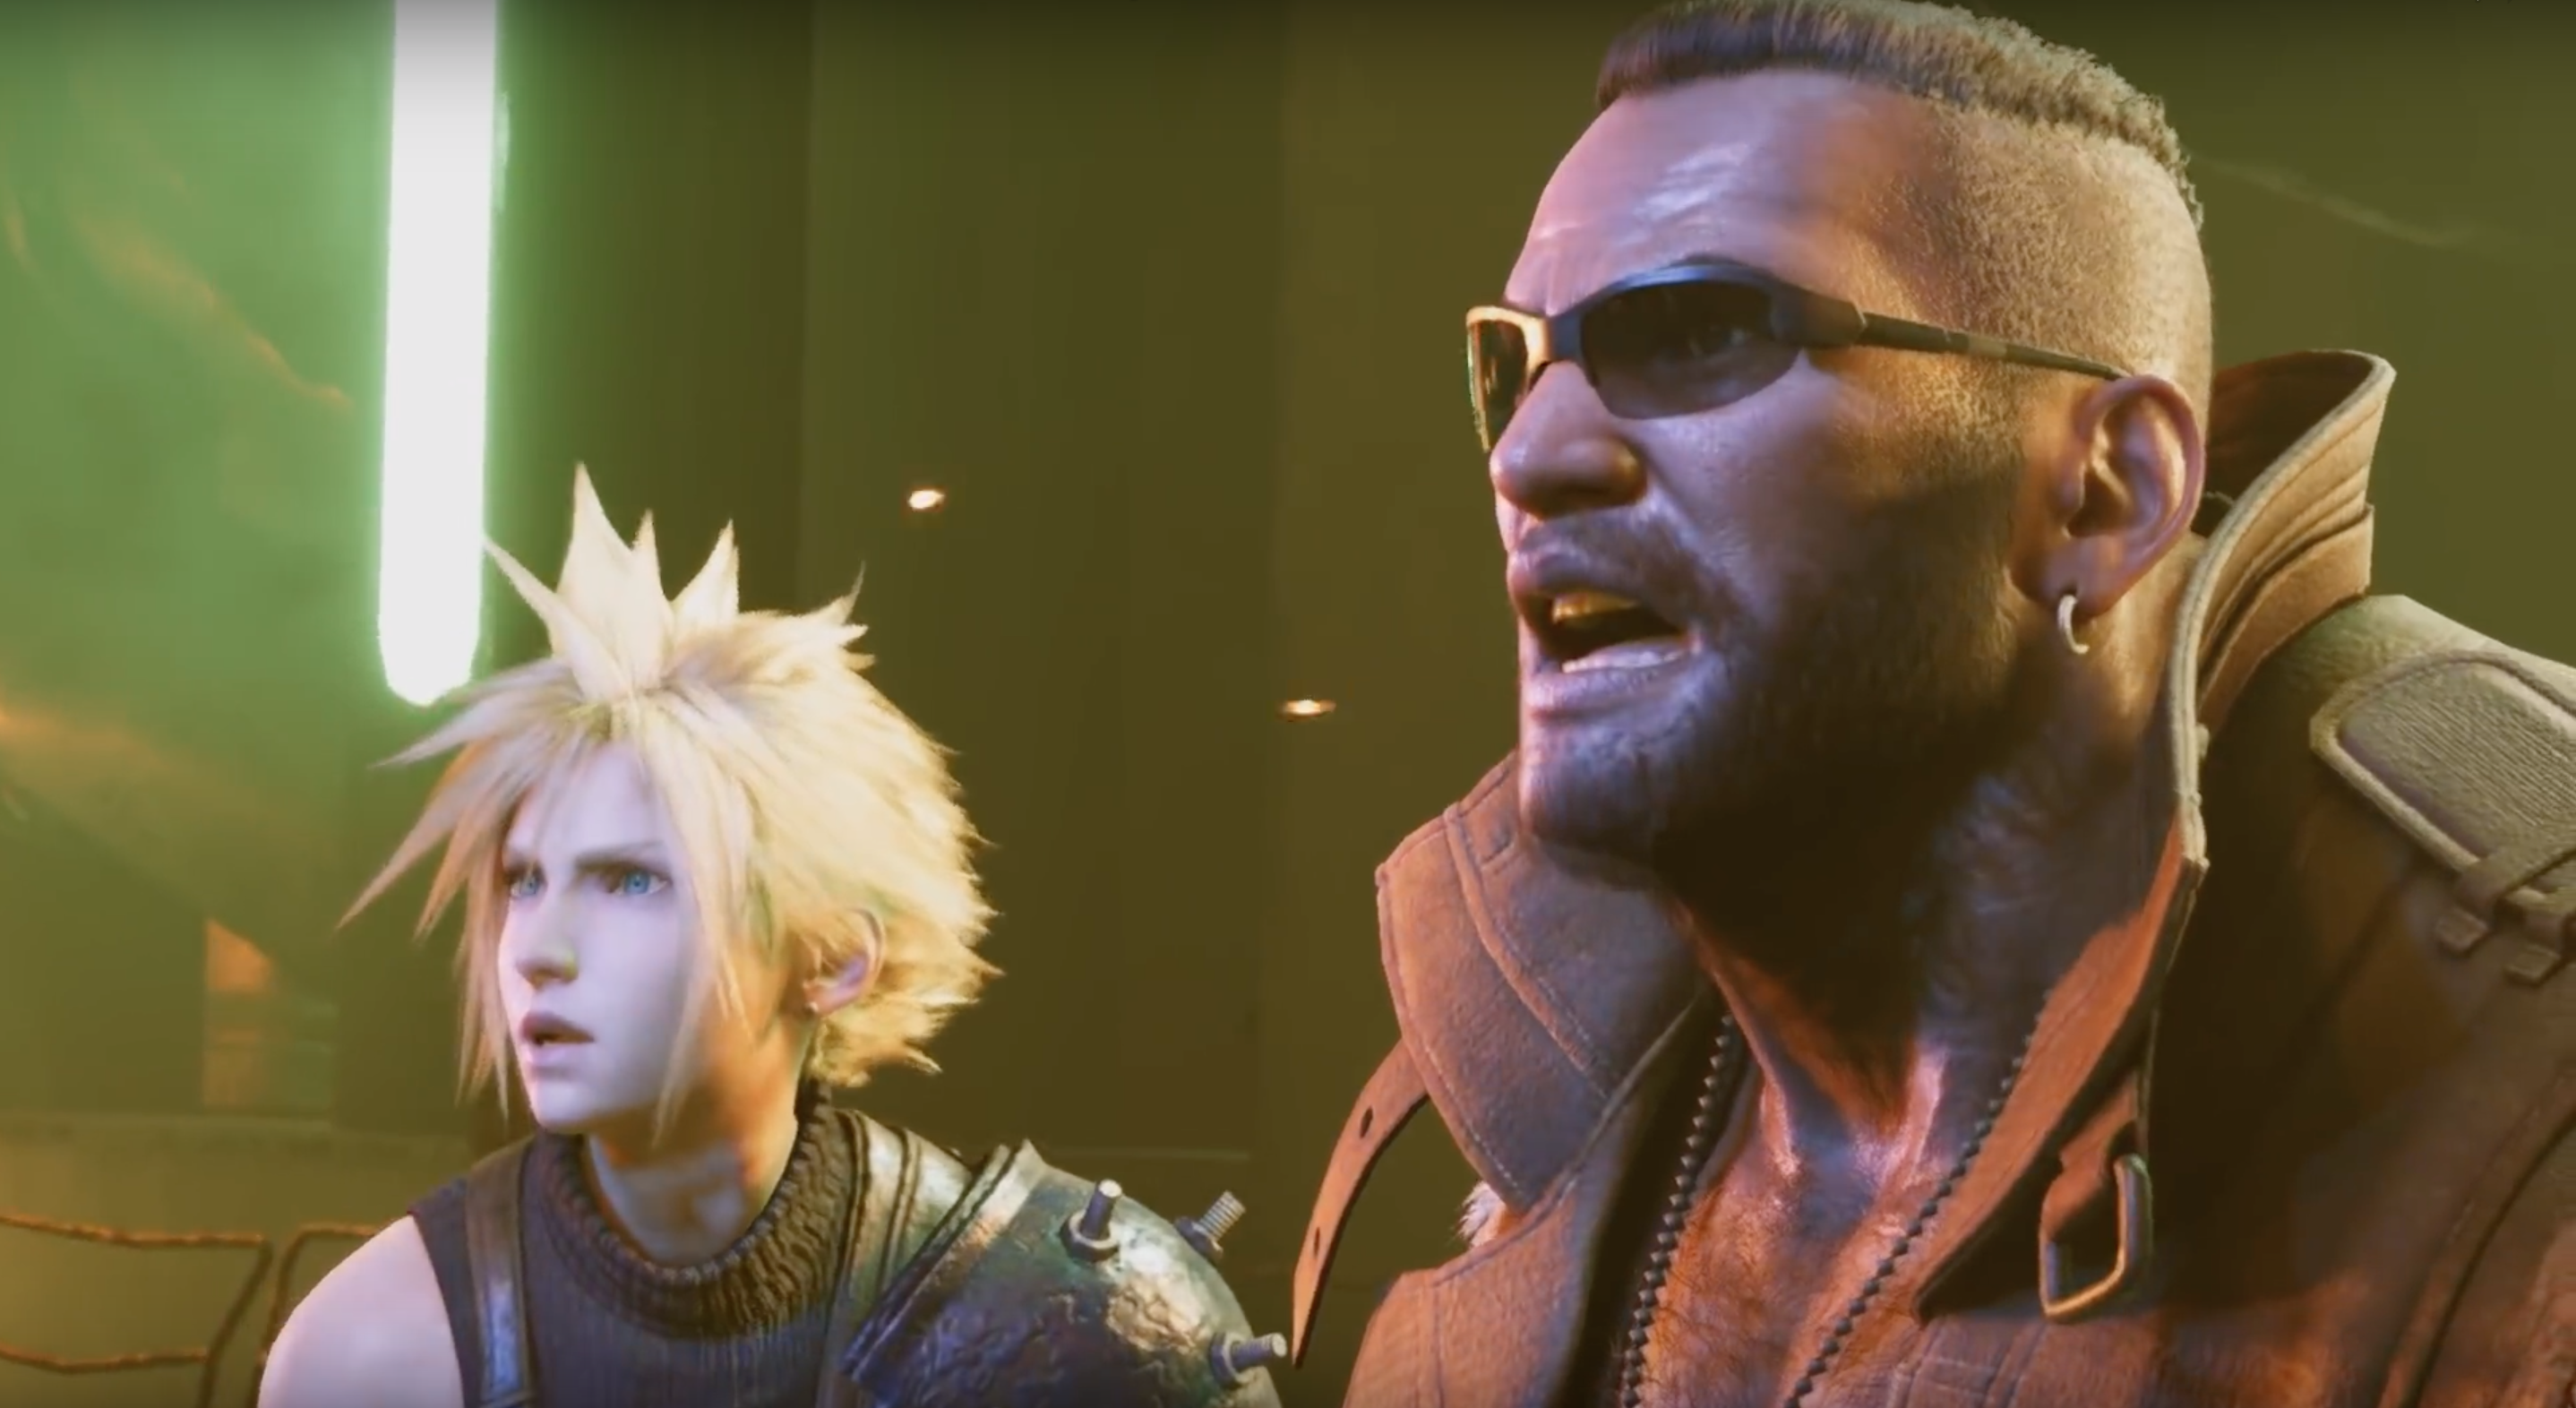 Square Enix Debuts Low-Poly Final Fantasy VII Remake Figurines and They Are Adorable